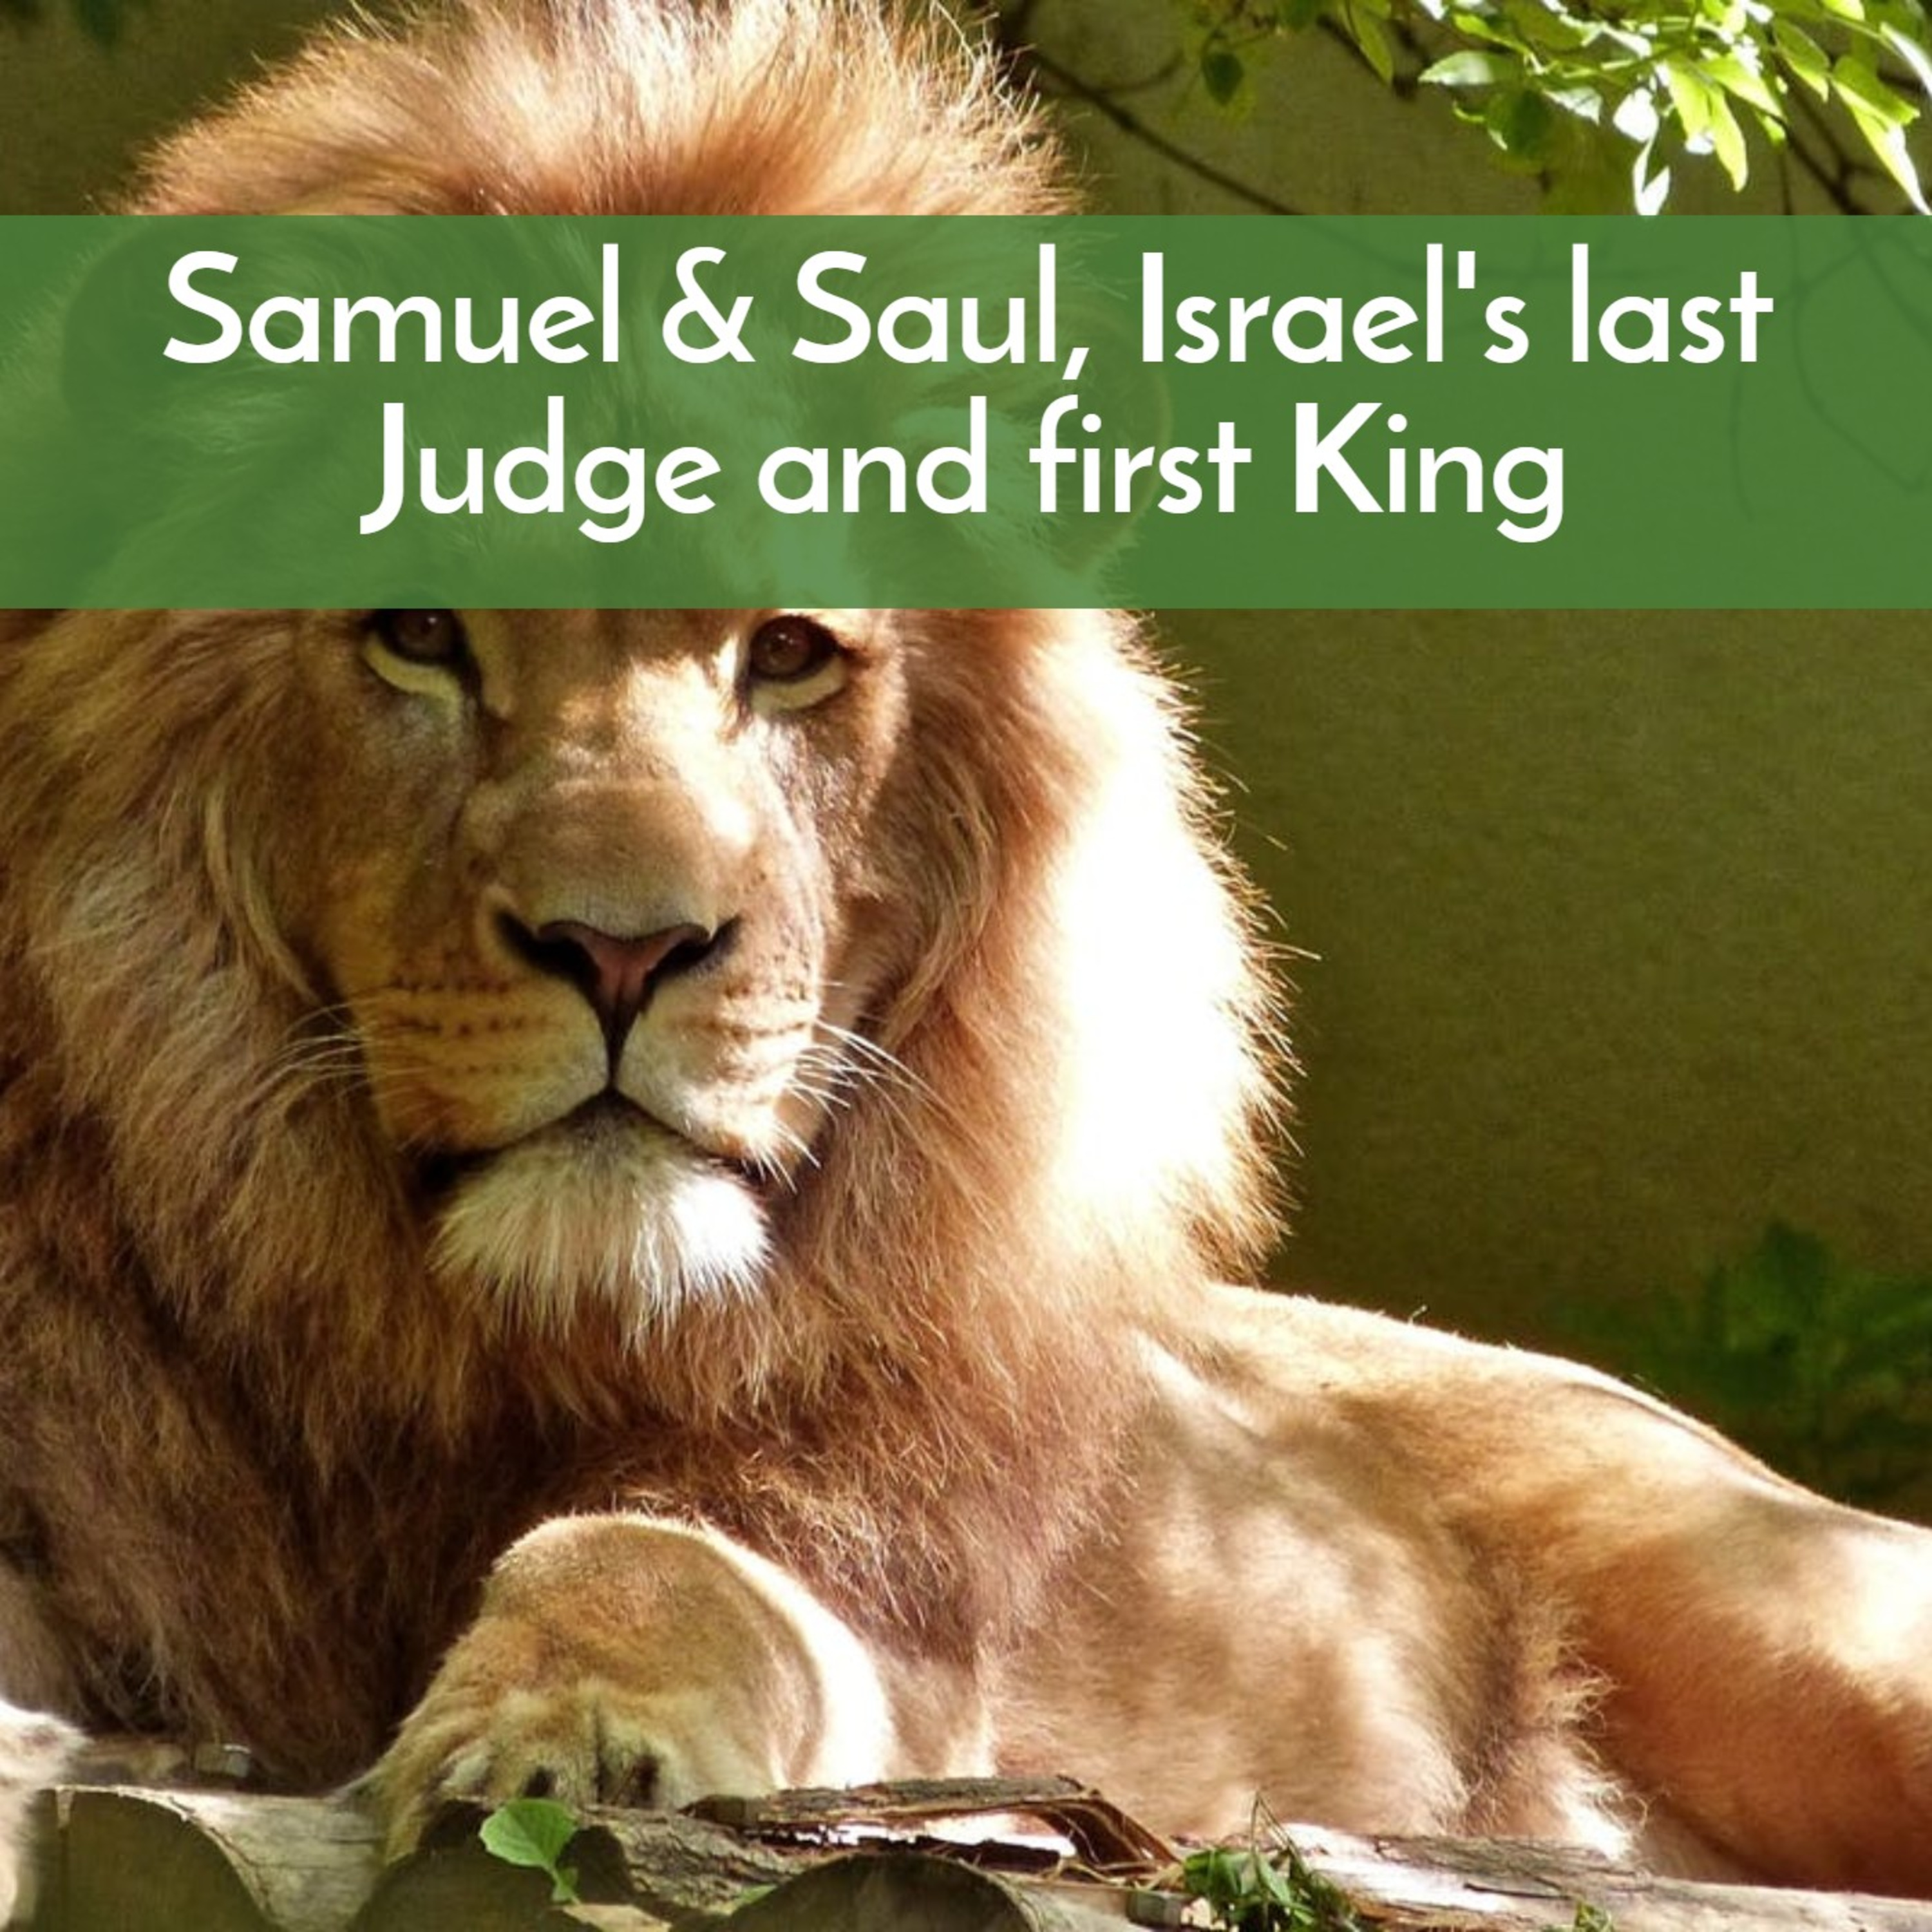 Samuel & Saul--the last Judge and the first King of Israel